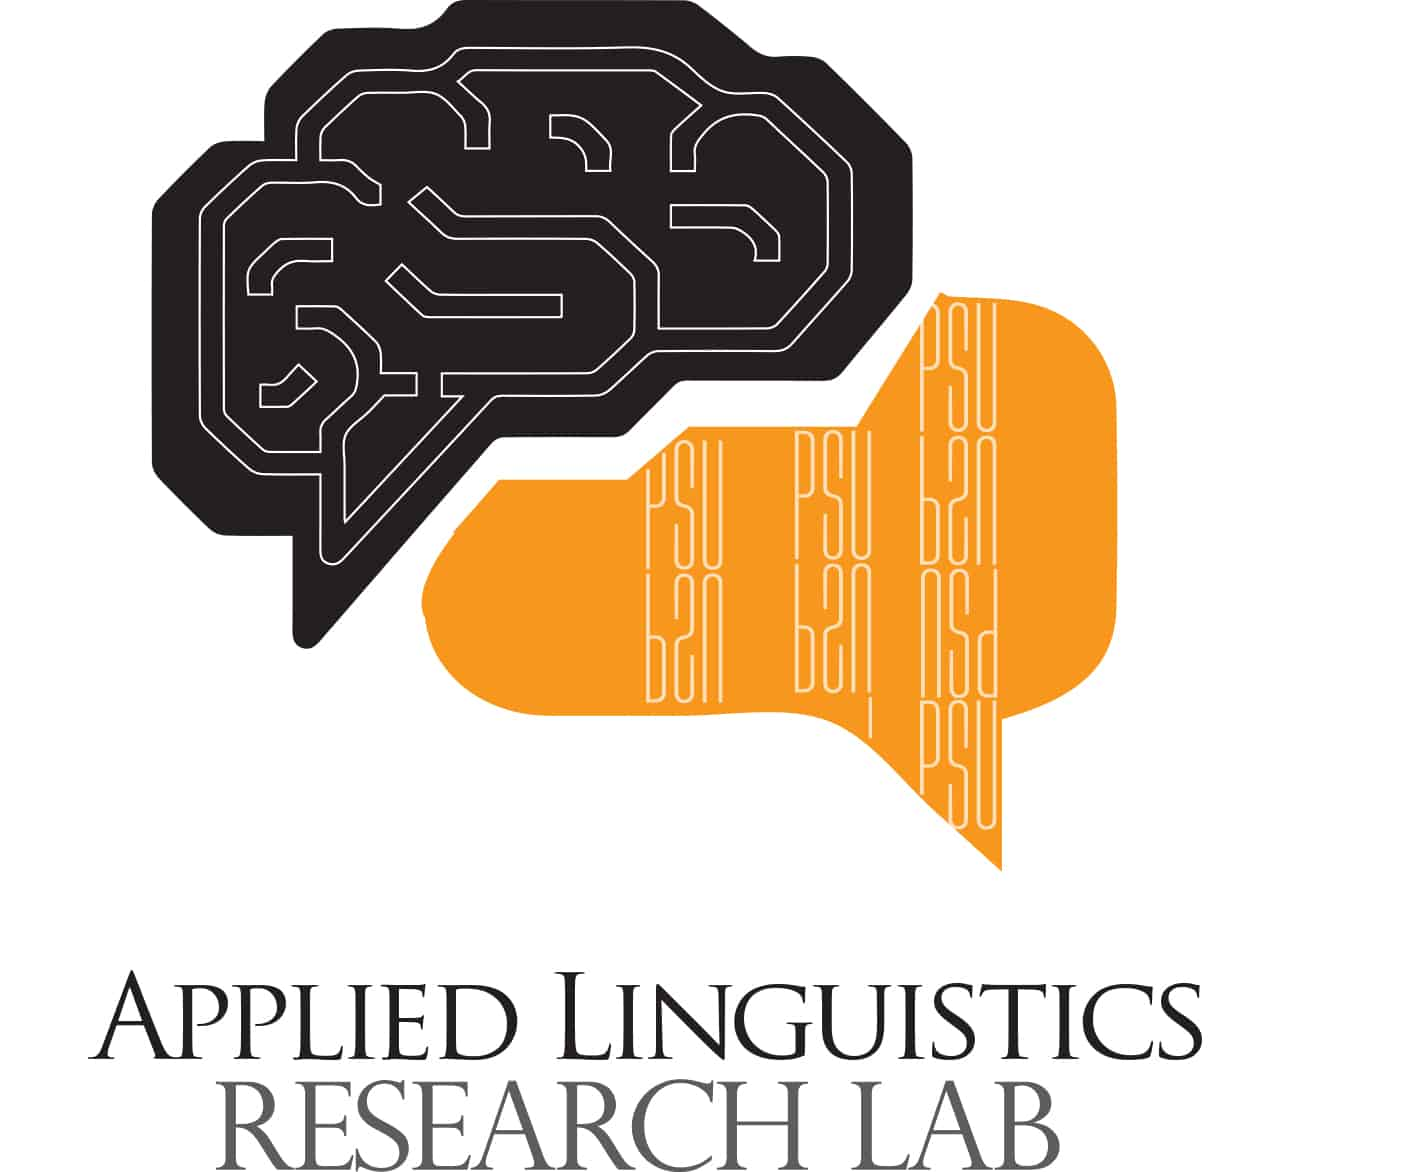 The Applied Linguistics Research Lab Delivers an 8-Hour Training Program on Action Research to English Language Teachers